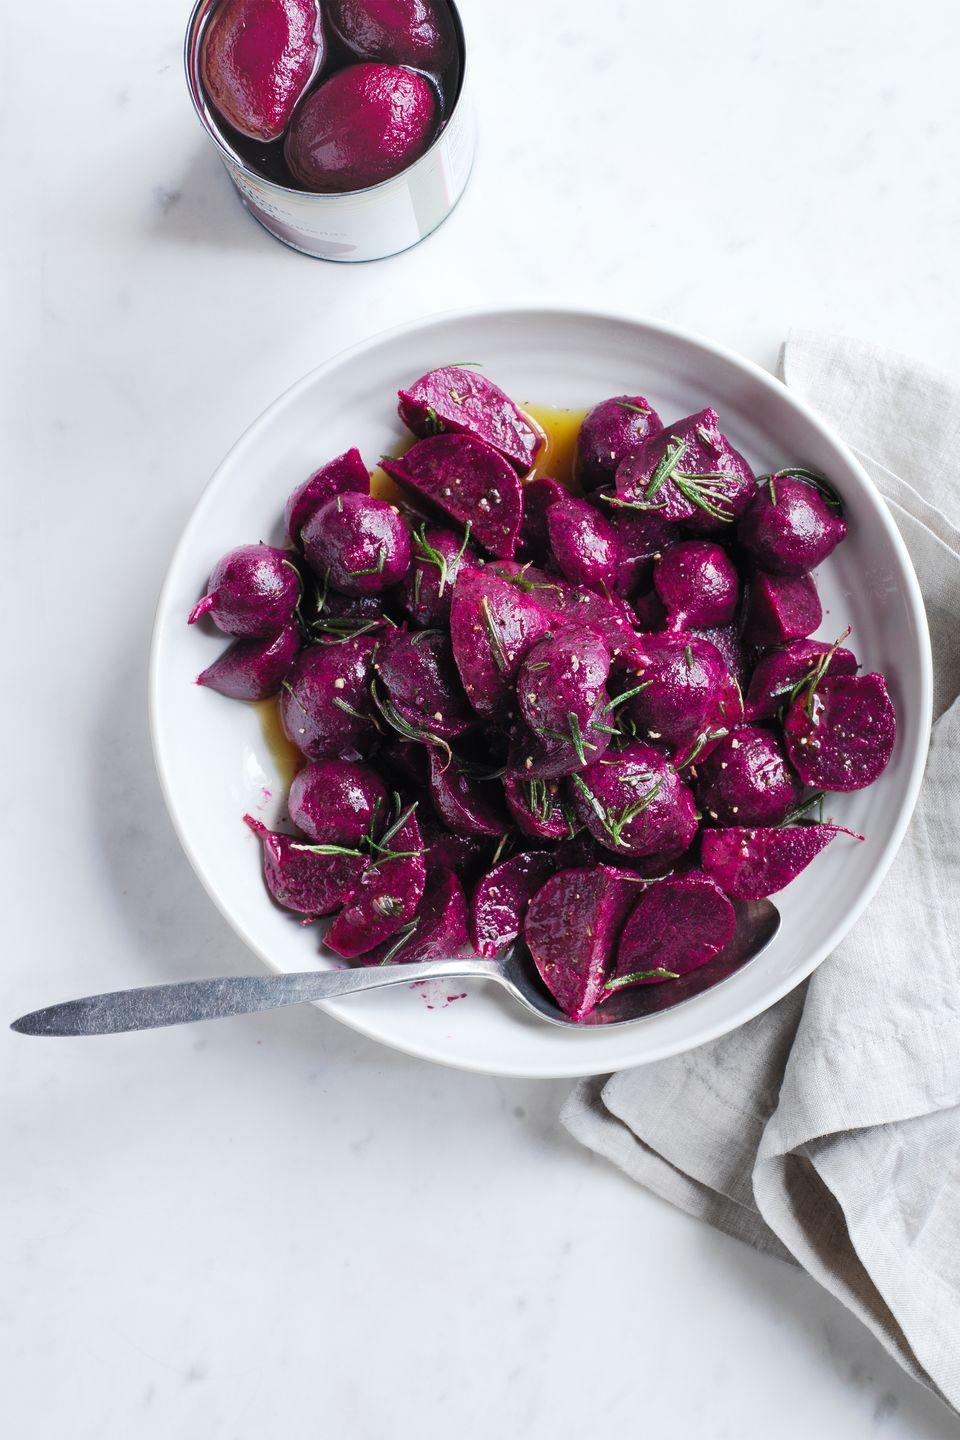 """<p>Beets are a low-cost way to be mindful of a budget pinch without sacrificing great flavor — this dish is only 67 cents per serving! After whisking together the ingredients and pouring over the beets, they can be refrigerated for up to two days. </p><p><a href=""""https://www.womansday.com/food-recipes/food-drinks/recipes/a52069/marinated-beets-with-rosemary/"""" rel=""""nofollow noopener"""" target=""""_blank"""" data-ylk=""""slk:Get the Marinated Beets with Rosemary recipe."""" class=""""link rapid-noclick-resp""""><em><strong>Get the Marinated Beets with Rosemary recipe.</strong></em></a> </p>"""